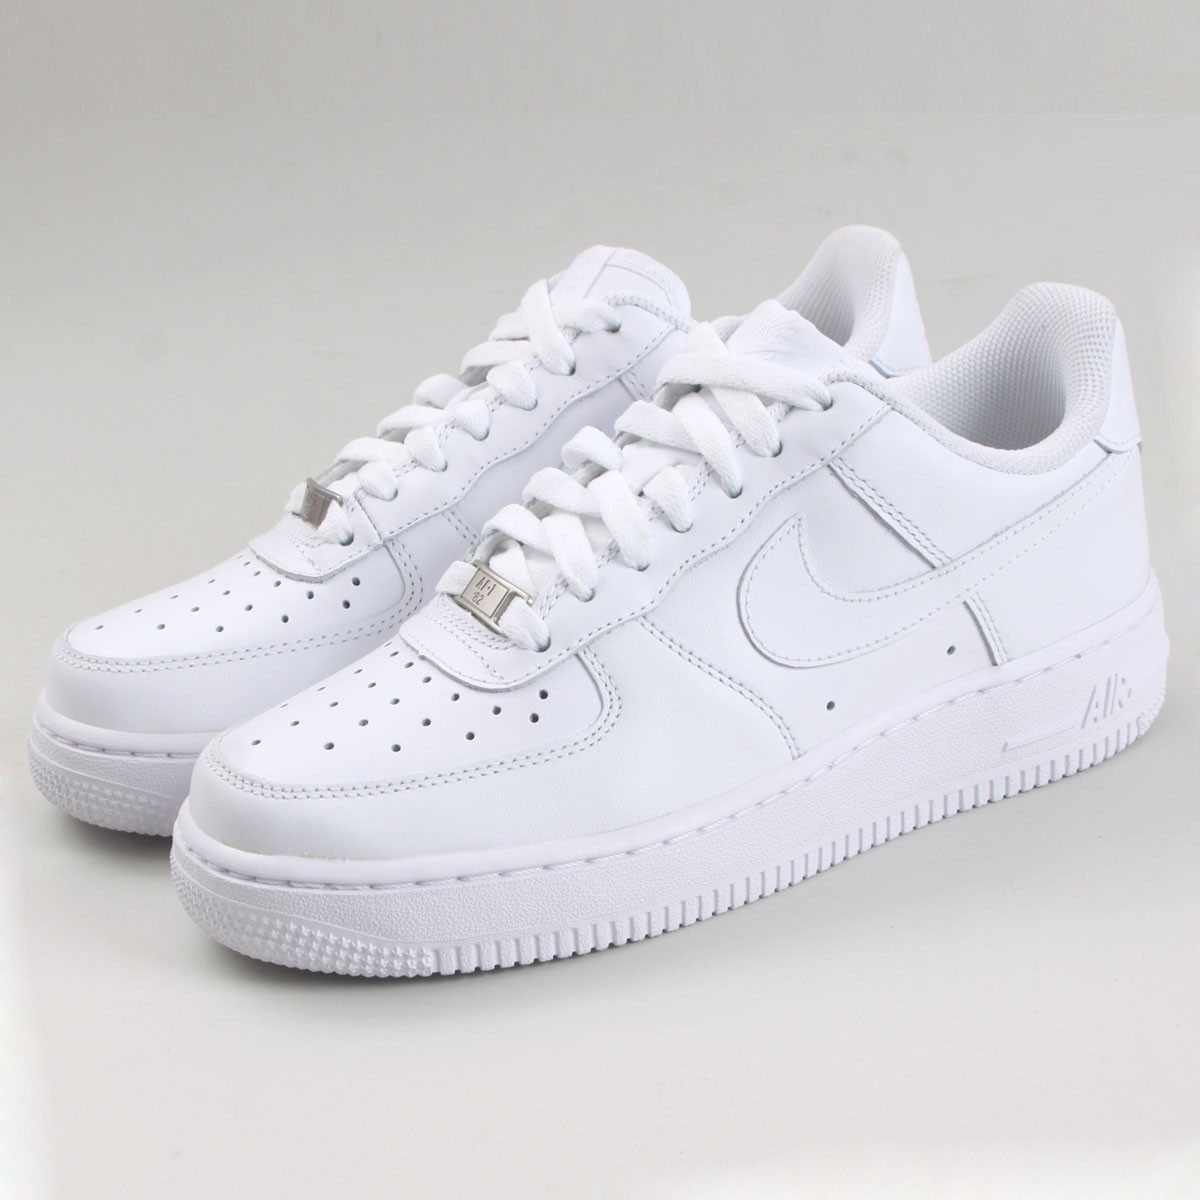 various colors 7eee6 0d757 Nike Air Force 1 Low Branco Por Encomenda - Budy Imports